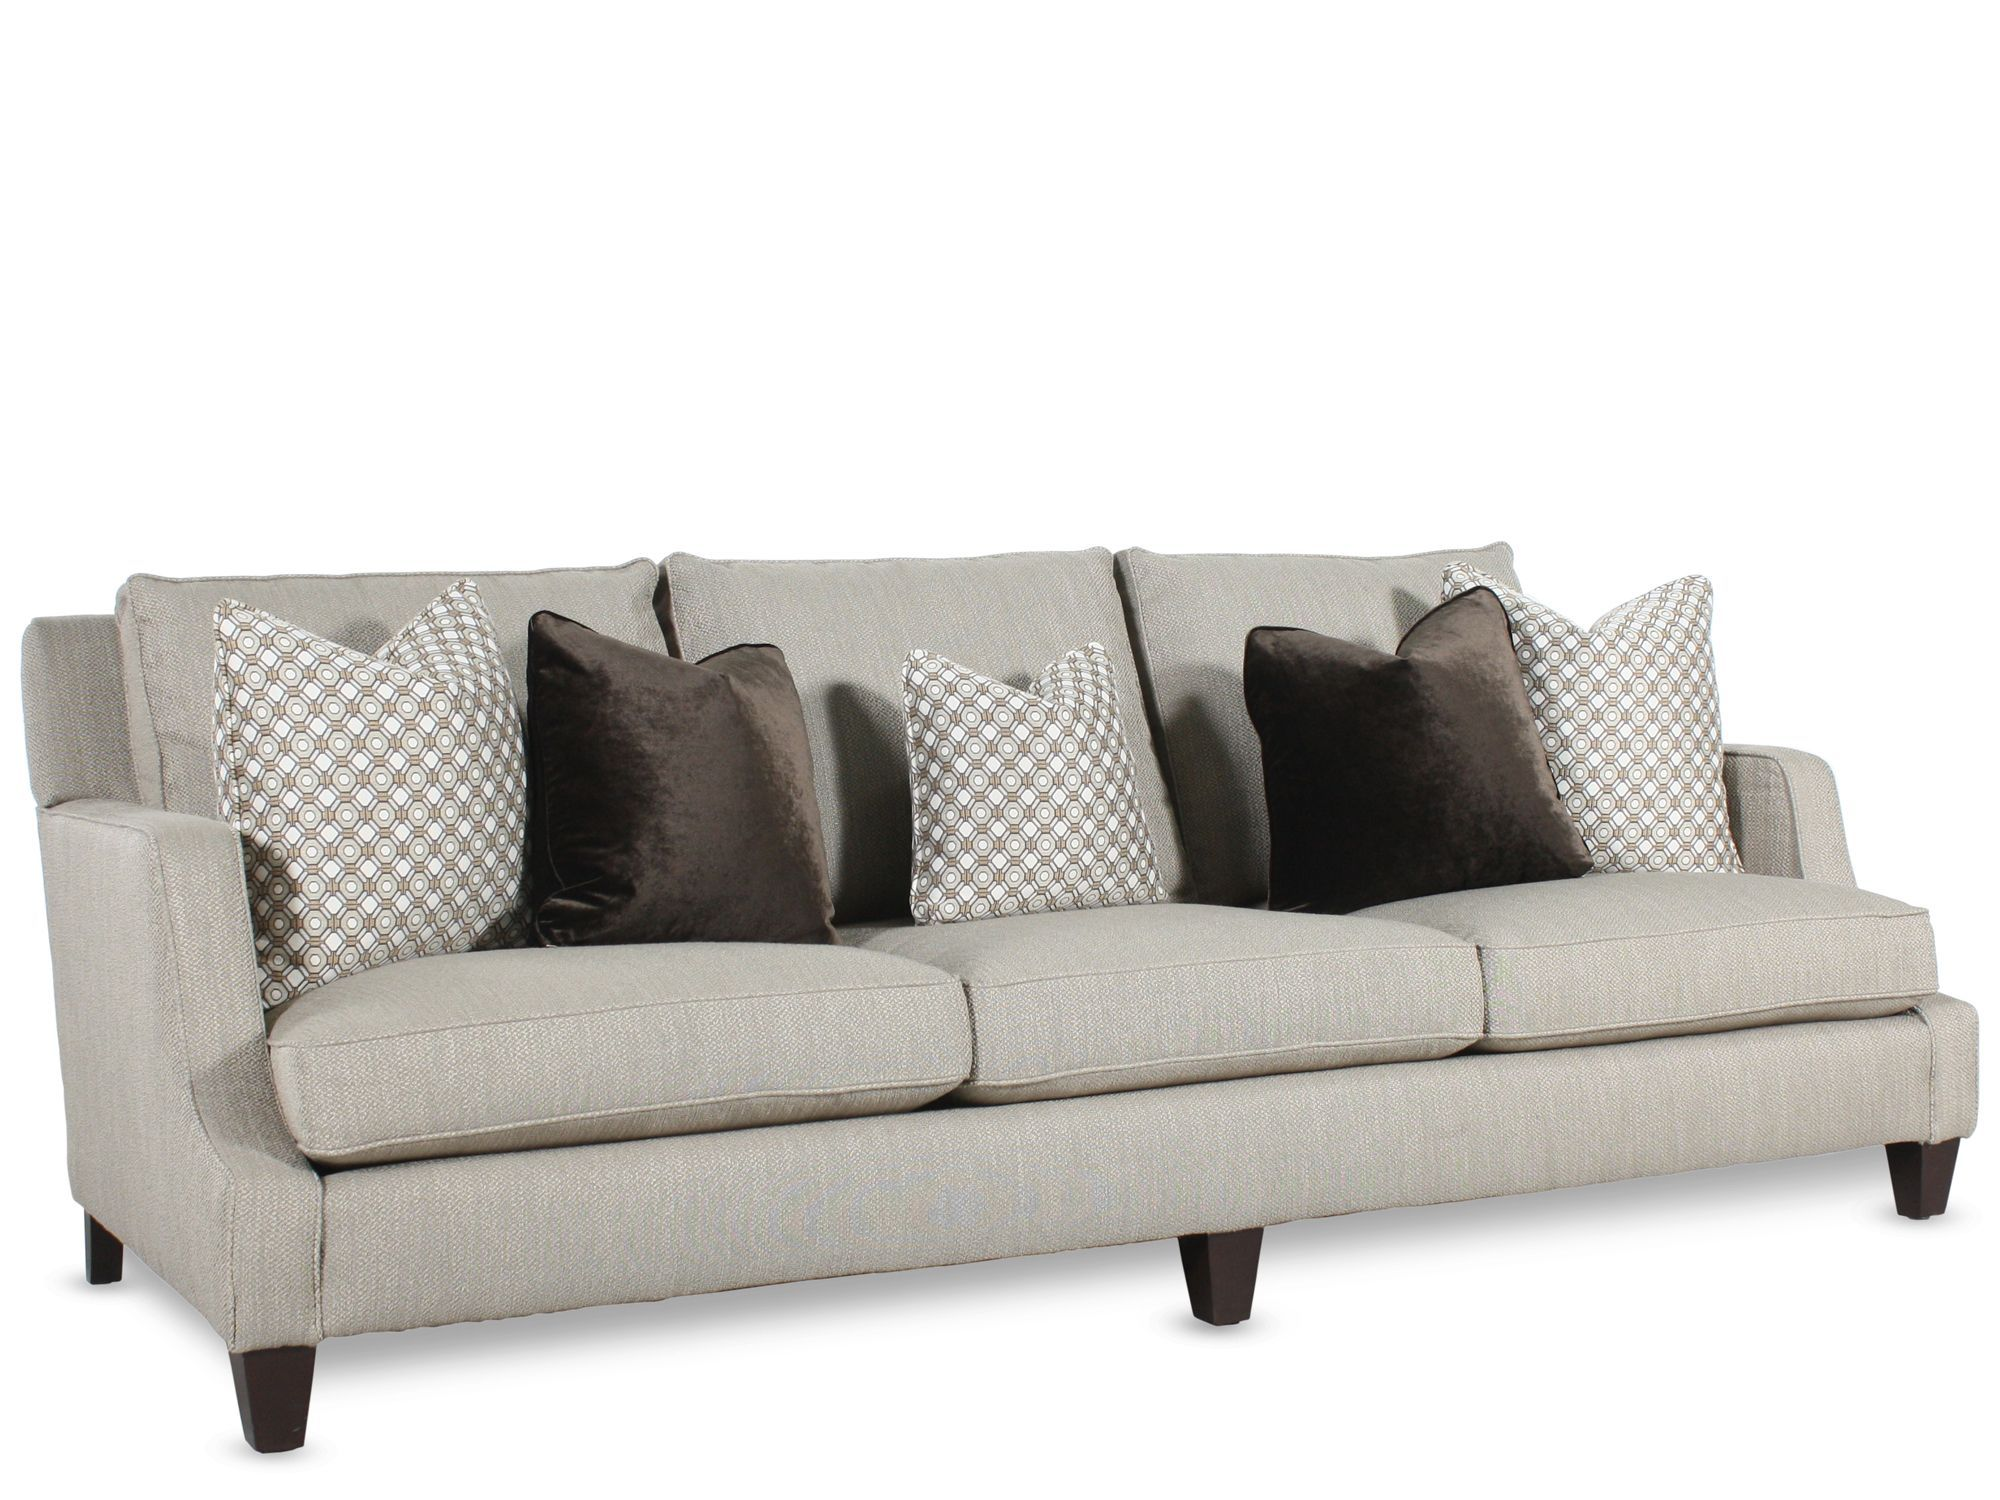 Bernhardt furniture jackie sofa refil sofa for Bernhardt furniture